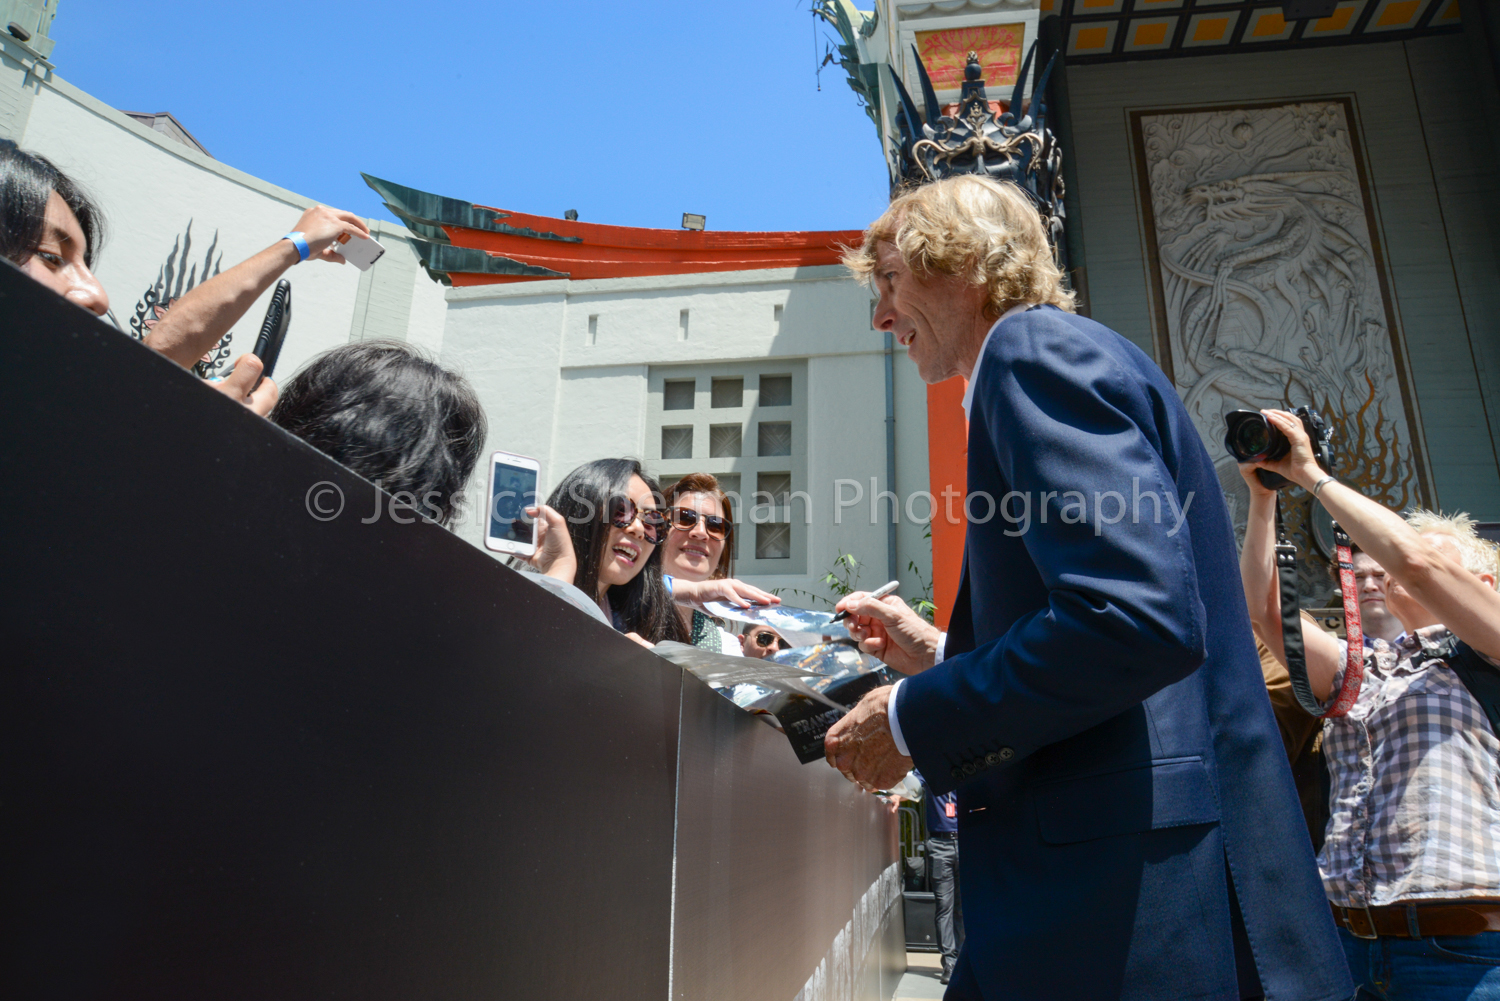 M_Bay_Signing_Autographs (1 of 1).jpg